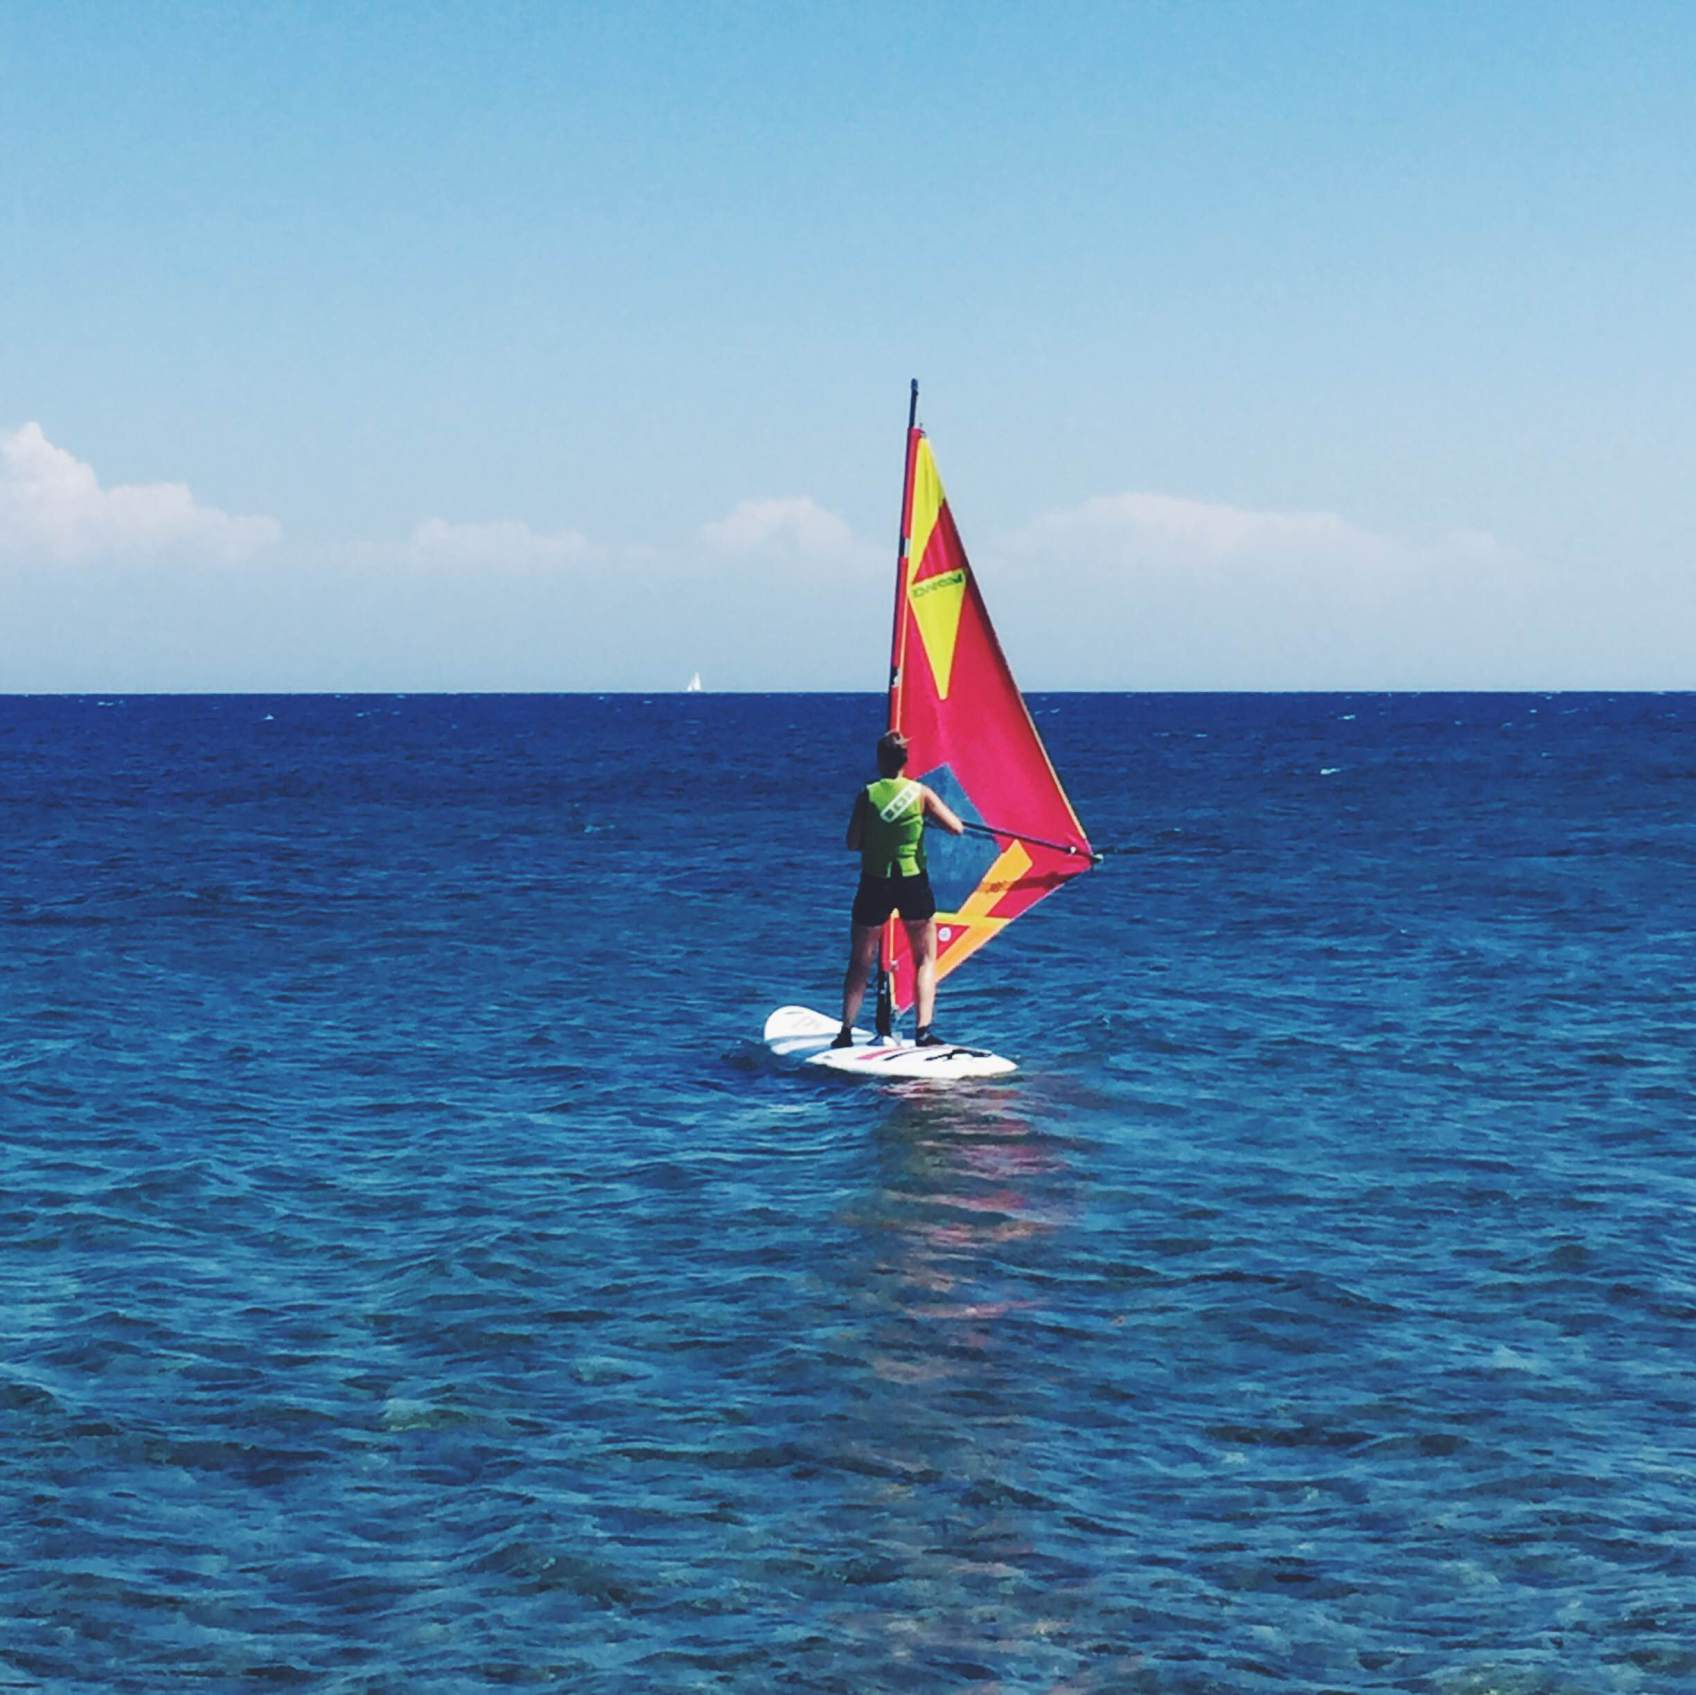 Windsurfing at Kos